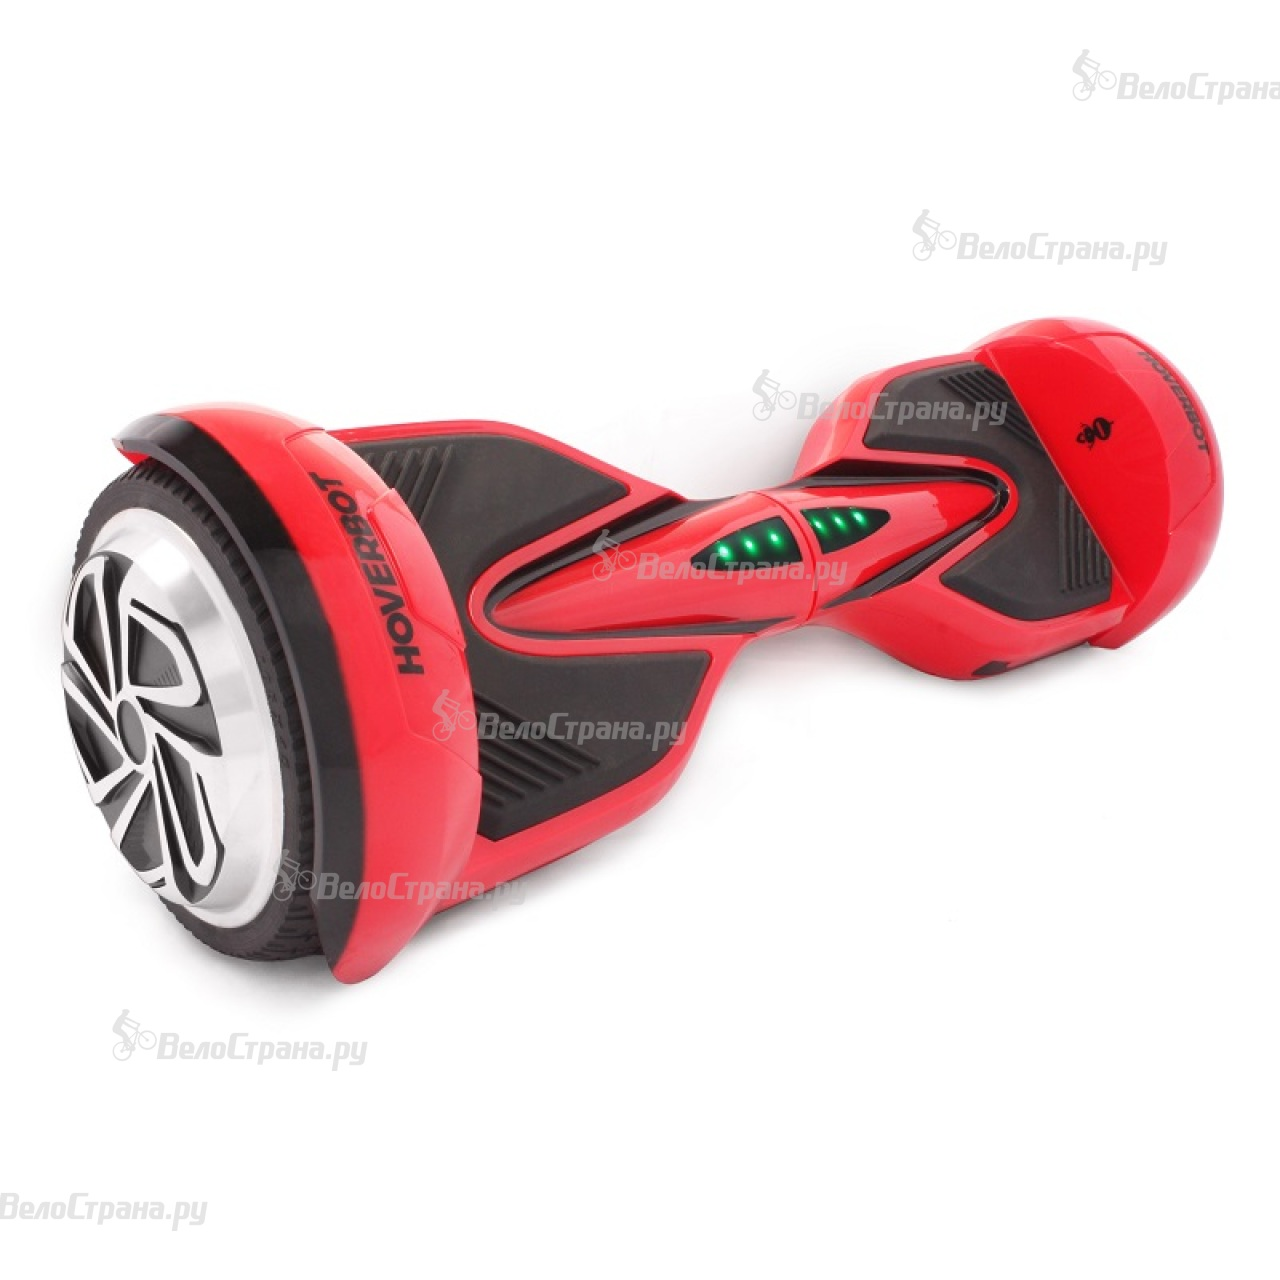 Гироскутер Hoverbot A-12 гироскутер hoverbot a 6 white